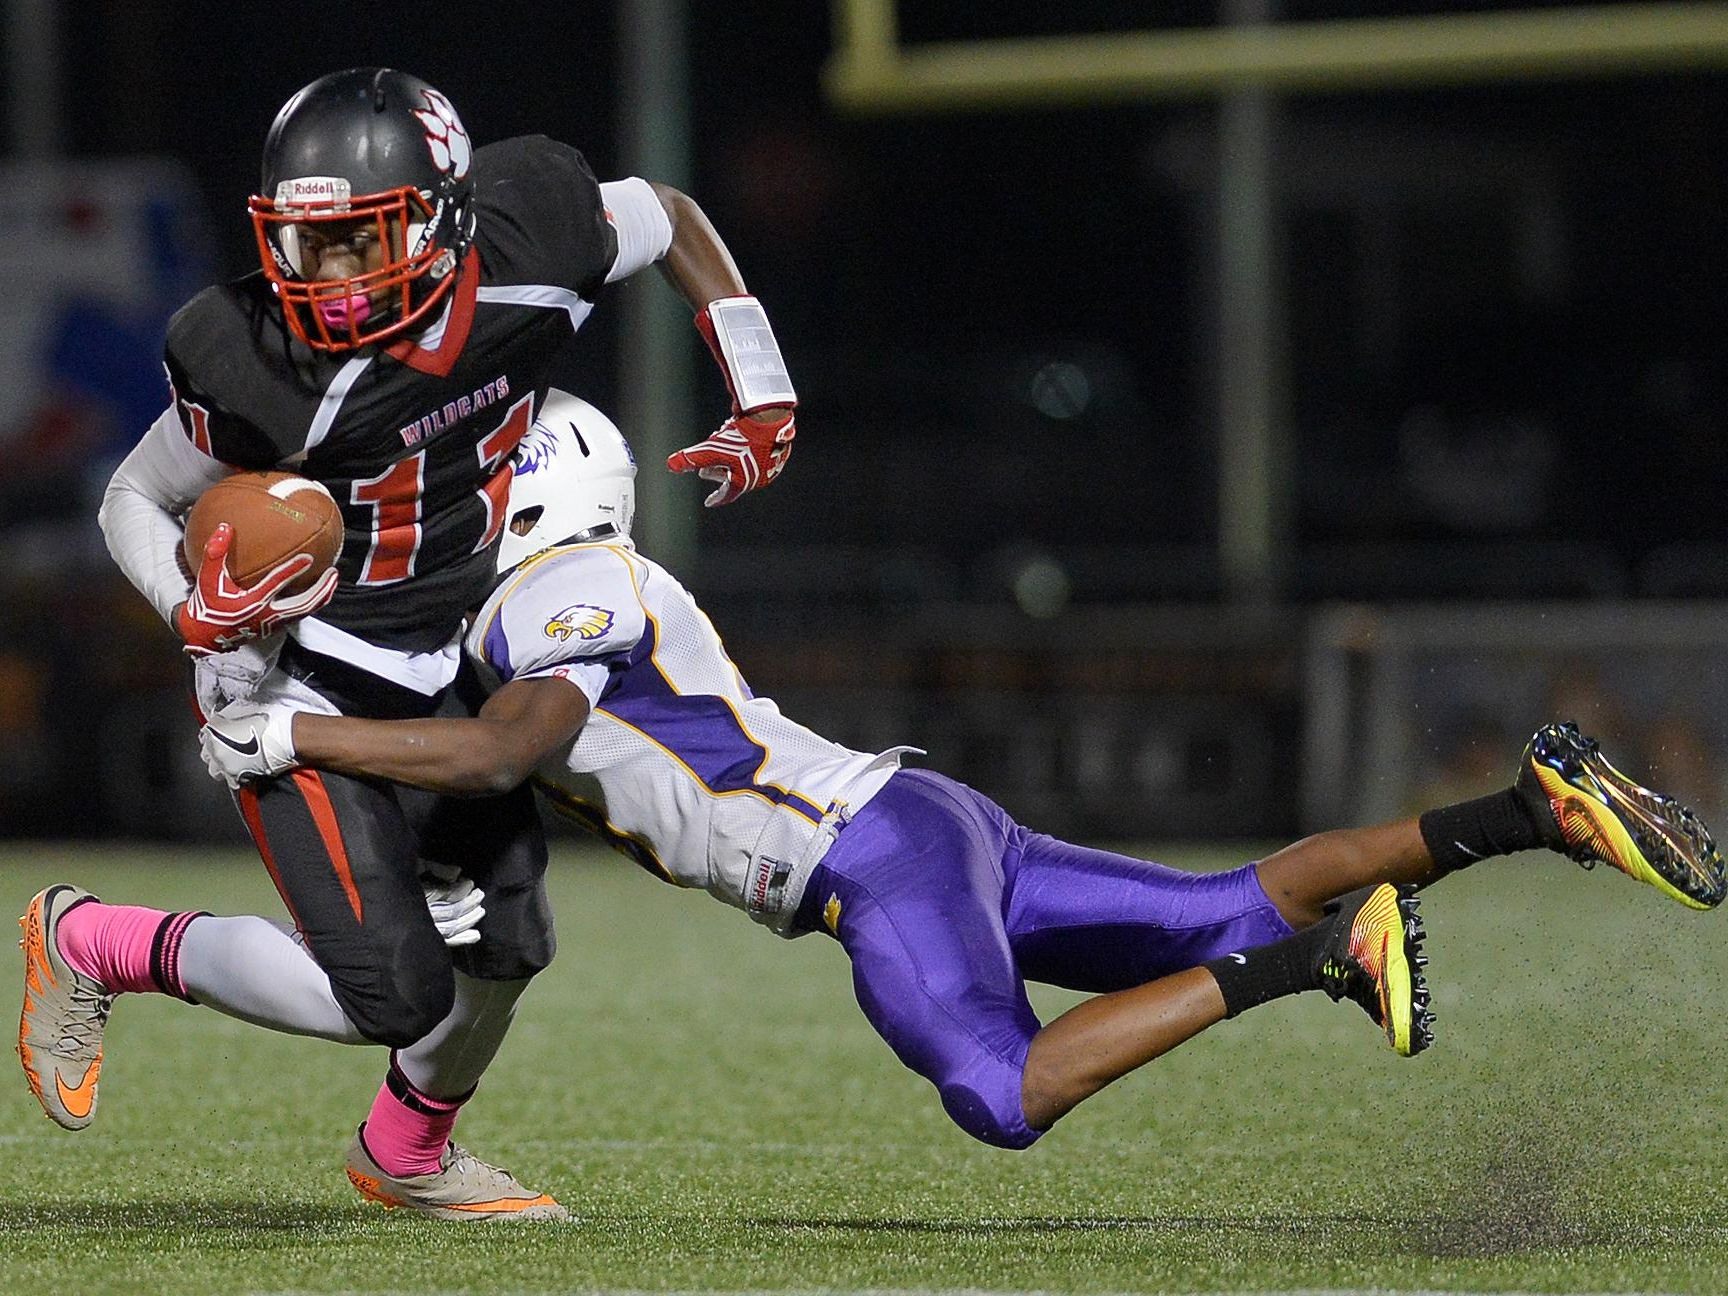 Wilson's Jervon Johnson is tackled by East's Zion Ponder after a reception at Rhinos Stadium on Friday. East won, 12-10.